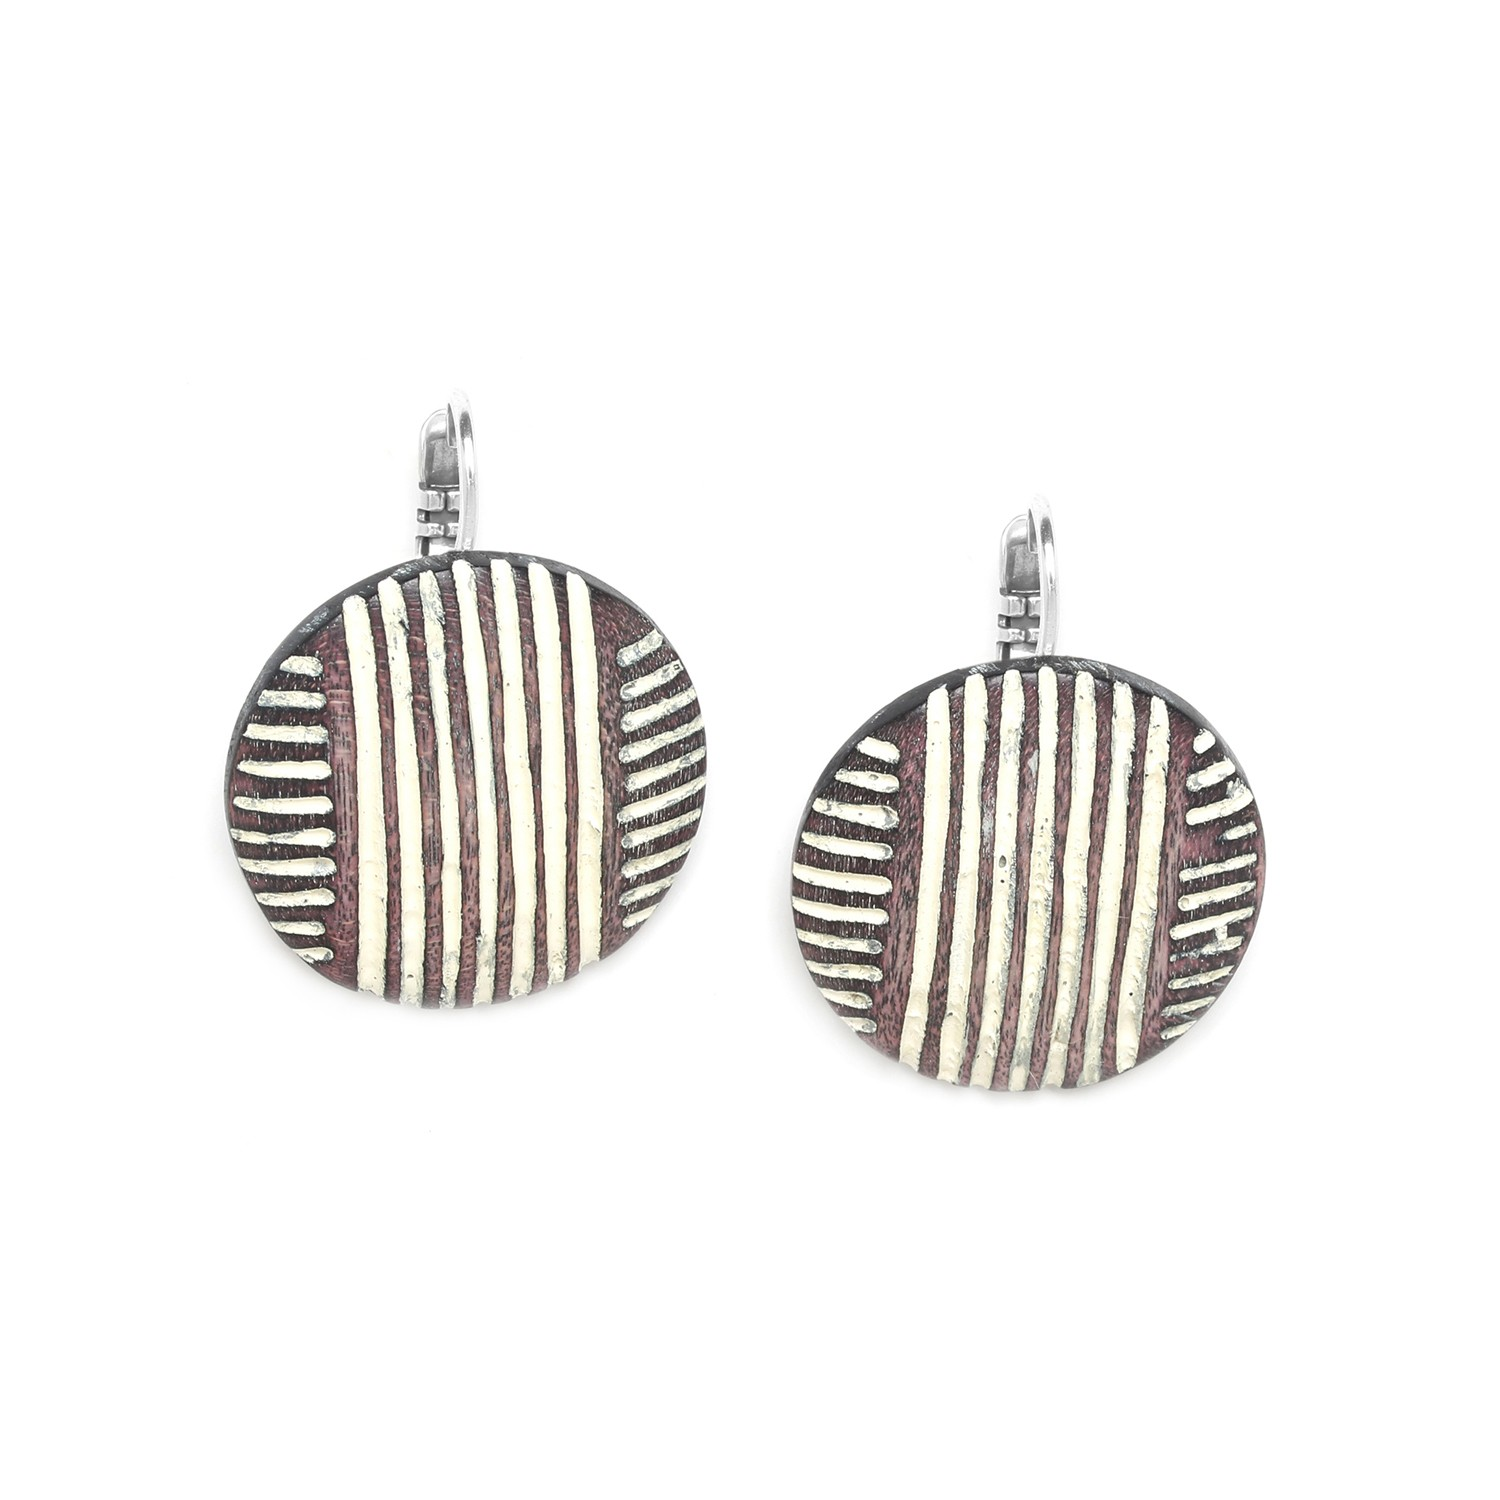 ZULU round shield french hook earrings